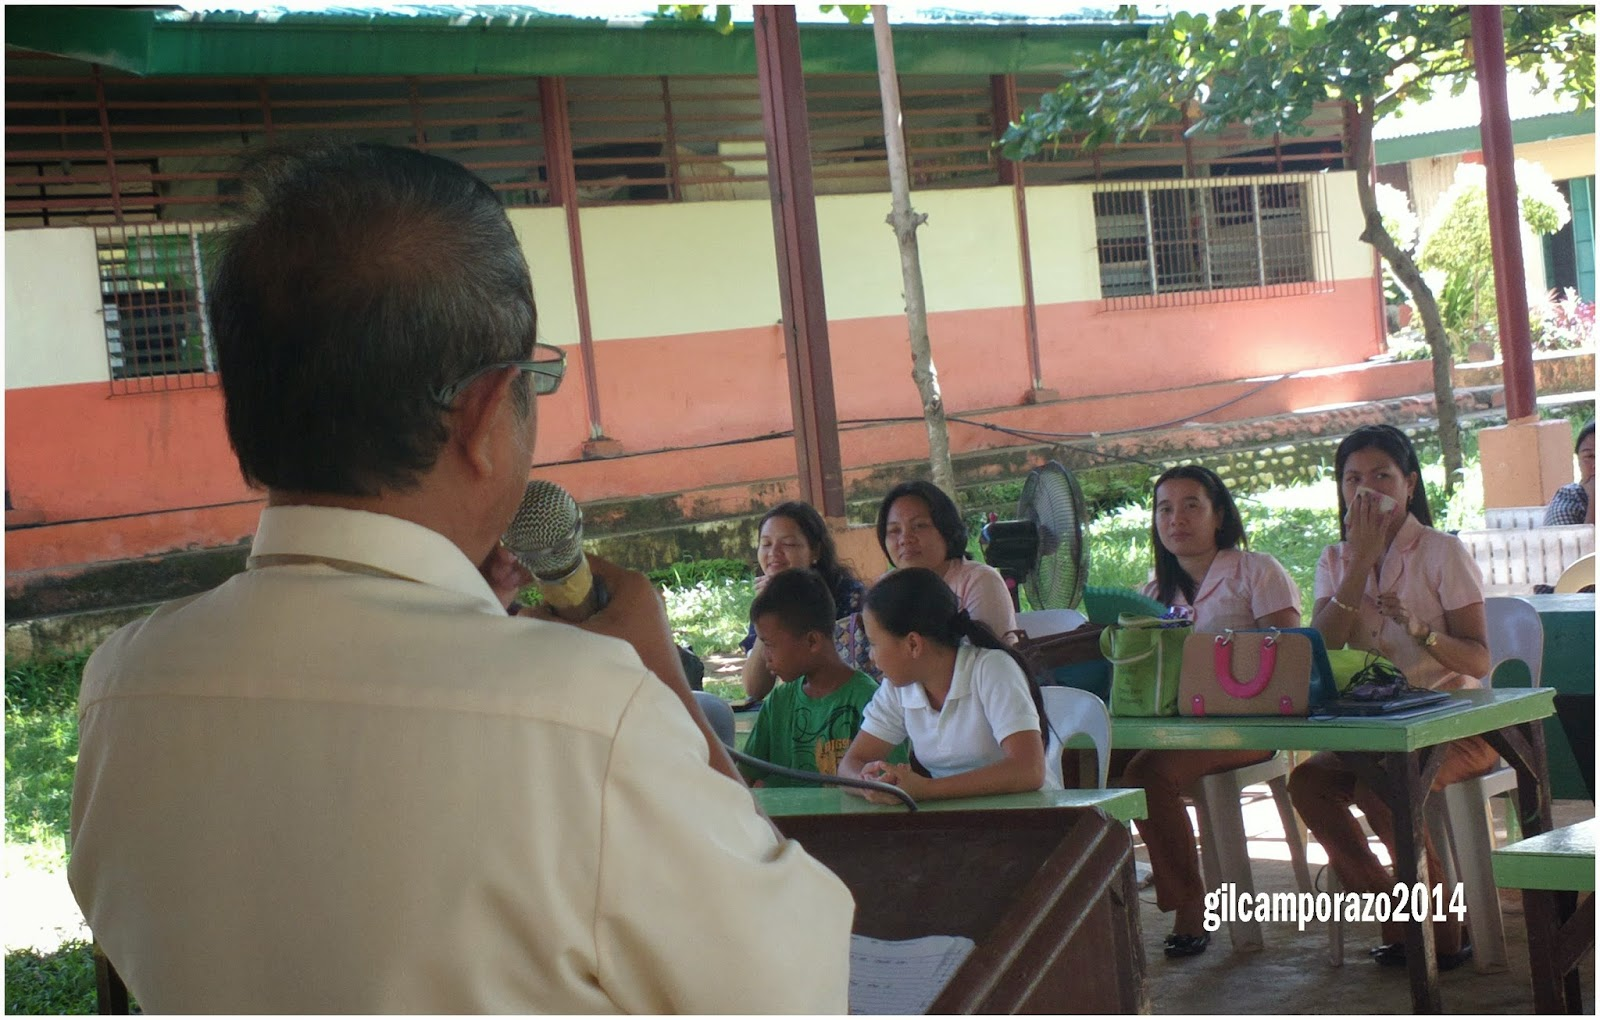 Sir Camporazo giving lecture on child rights